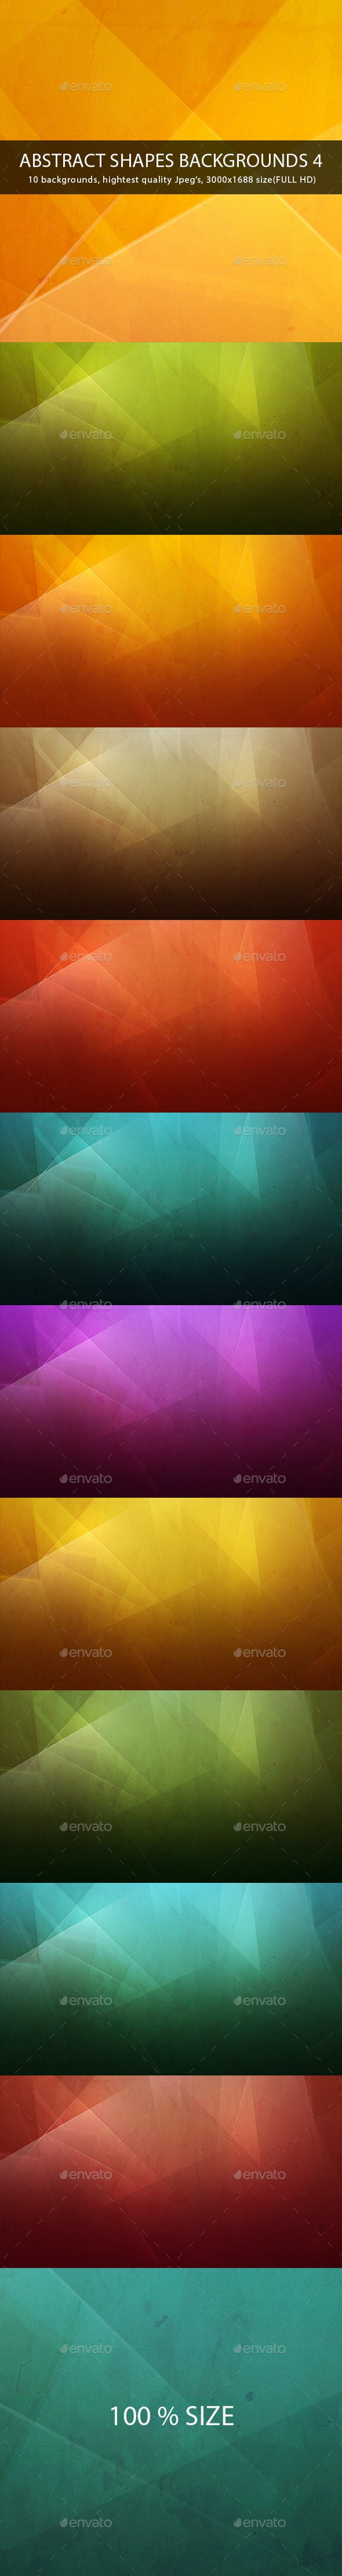 Abstract Shapes Backgrounds \ Wallpapers 4 - Abstract Backgrounds